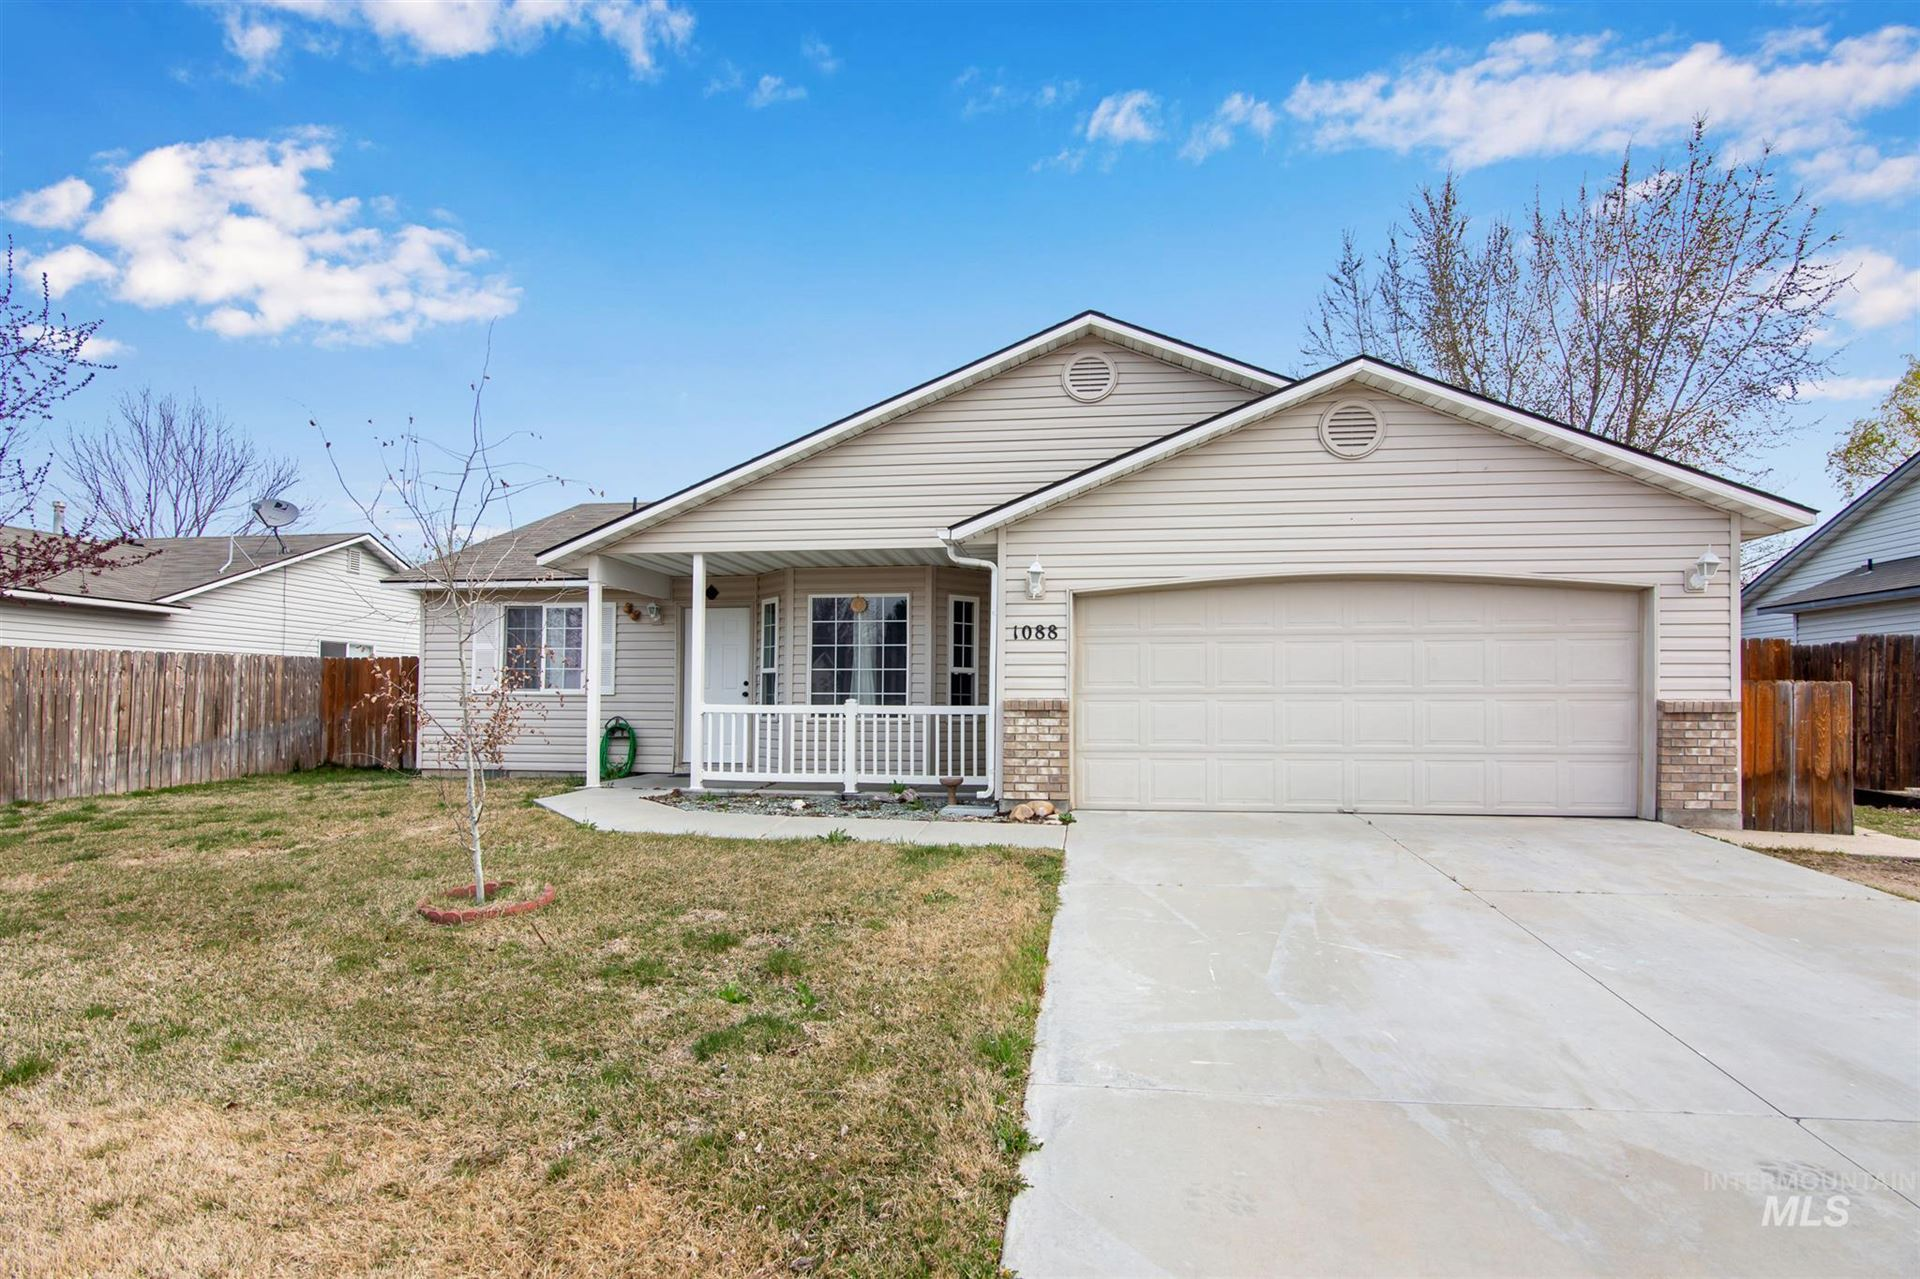 Photo of 1088 Abbey Ct, Middleton, ID 83644 (MLS # 98798646)